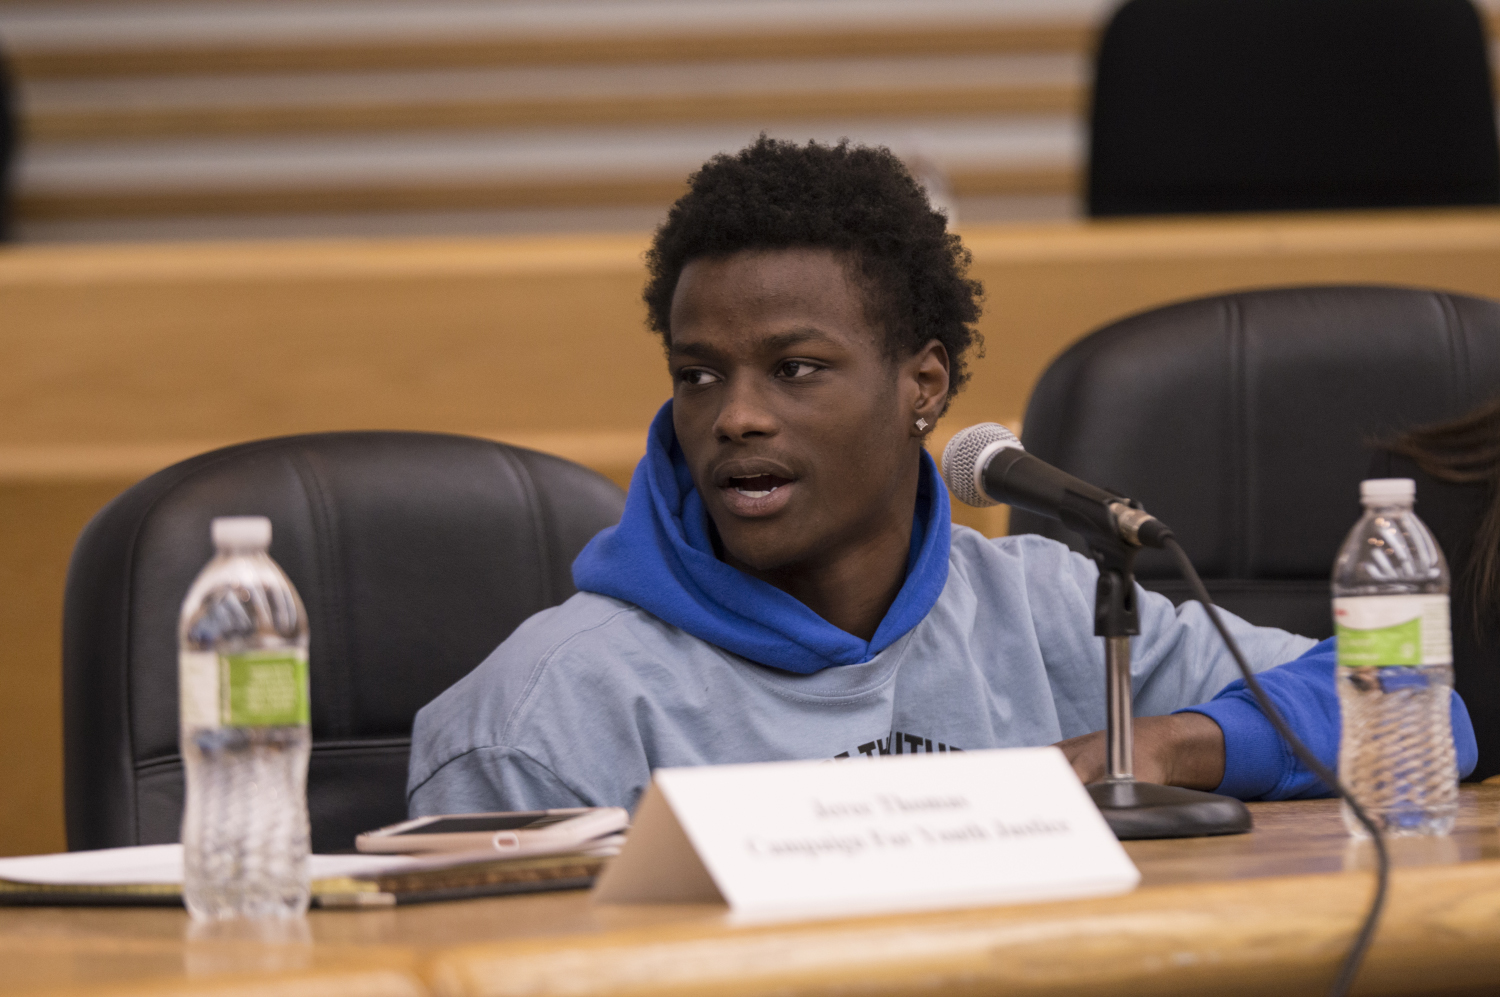 Danish Robertson  speaks during an event at the College of Law. Members of the community gathered to advocate against teenagers being held in adult prisons on Thursday, Nov. 1, 2018.